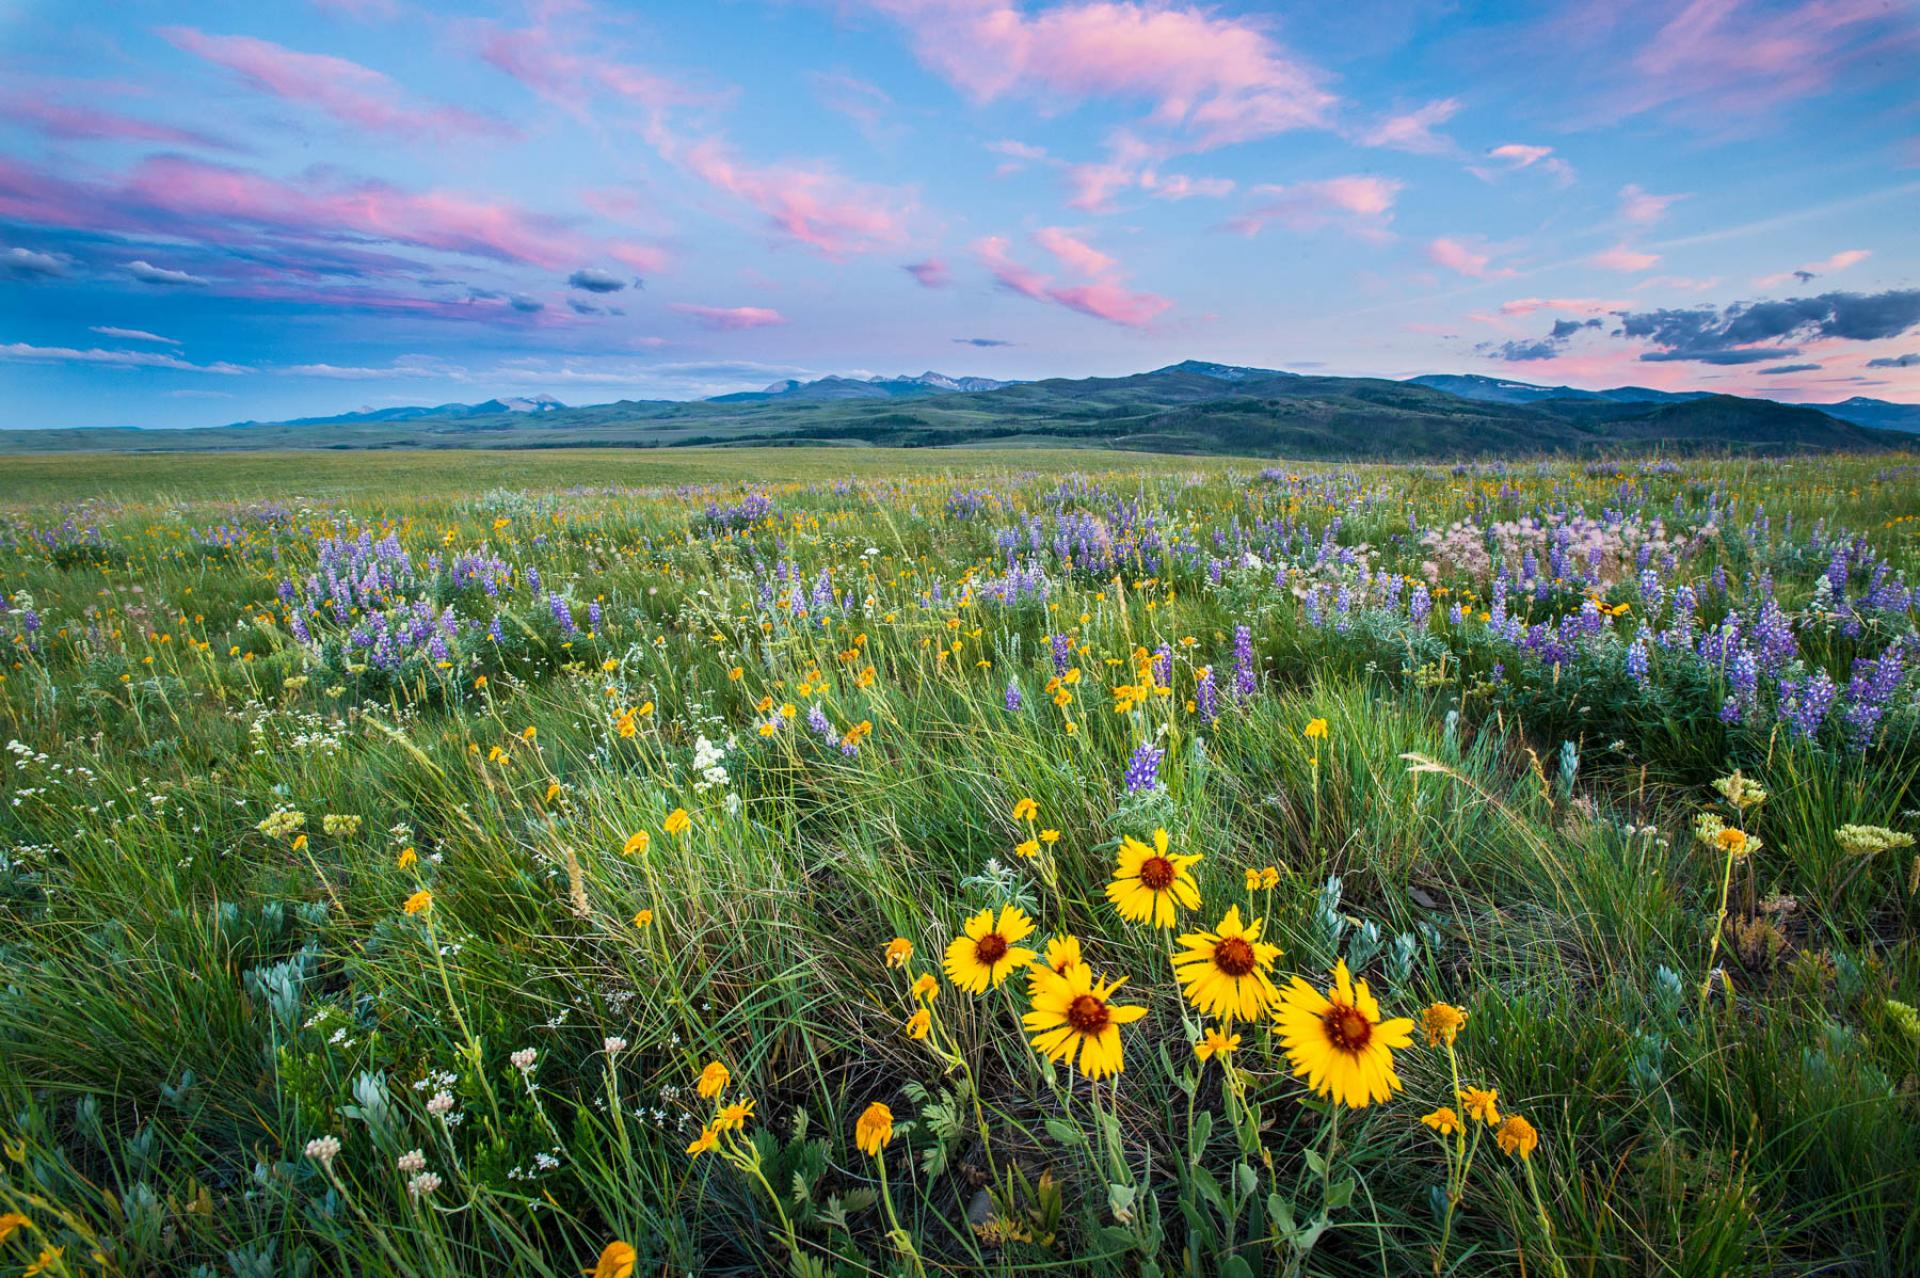 Wildflowers at sunset in Badger-Two Medicine, Montana